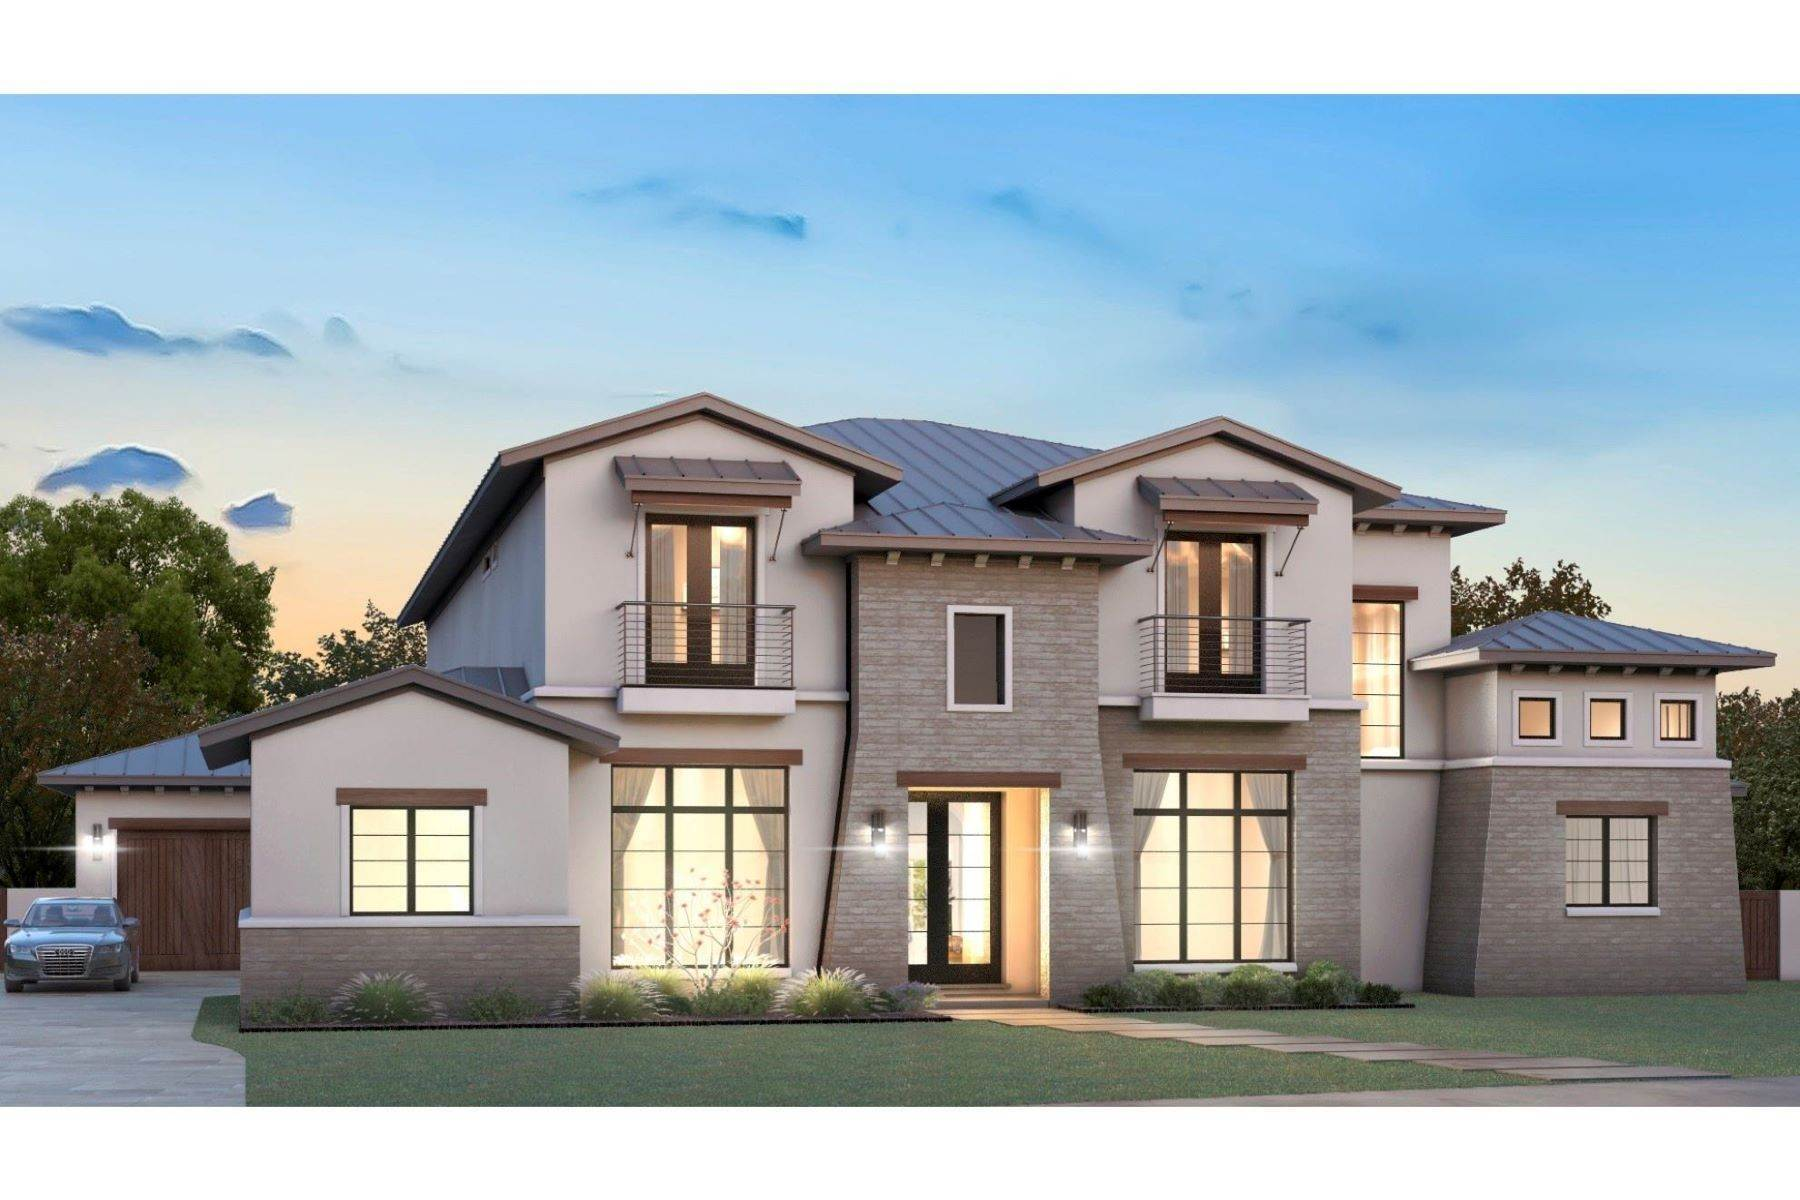 Single Family Homes for Sale at Stunning Modern Estate 1756 Hidalgo Lane Frisco, Texas 75034 United States